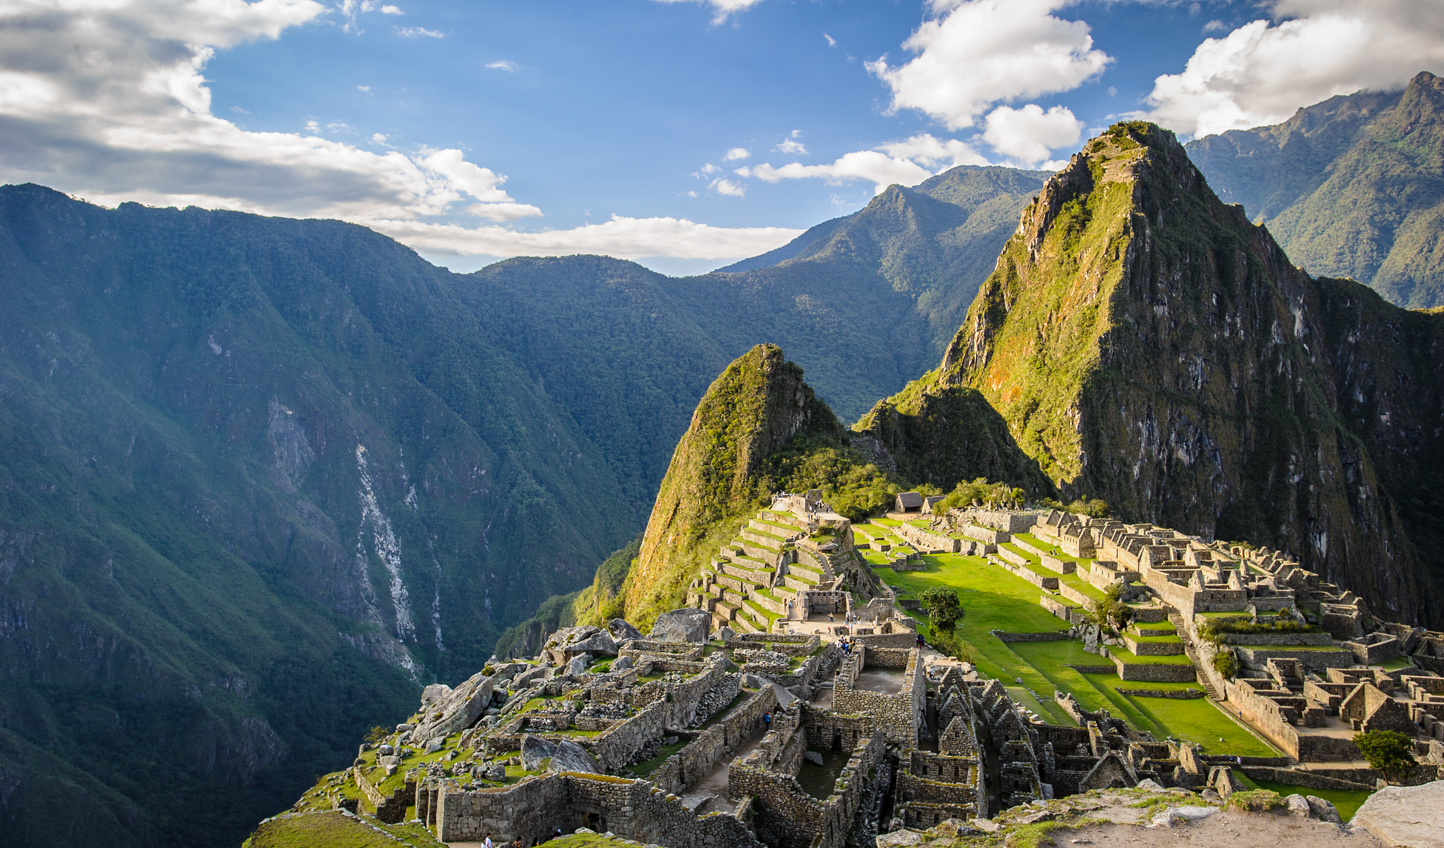 Take in the wonder of Machu Picchu